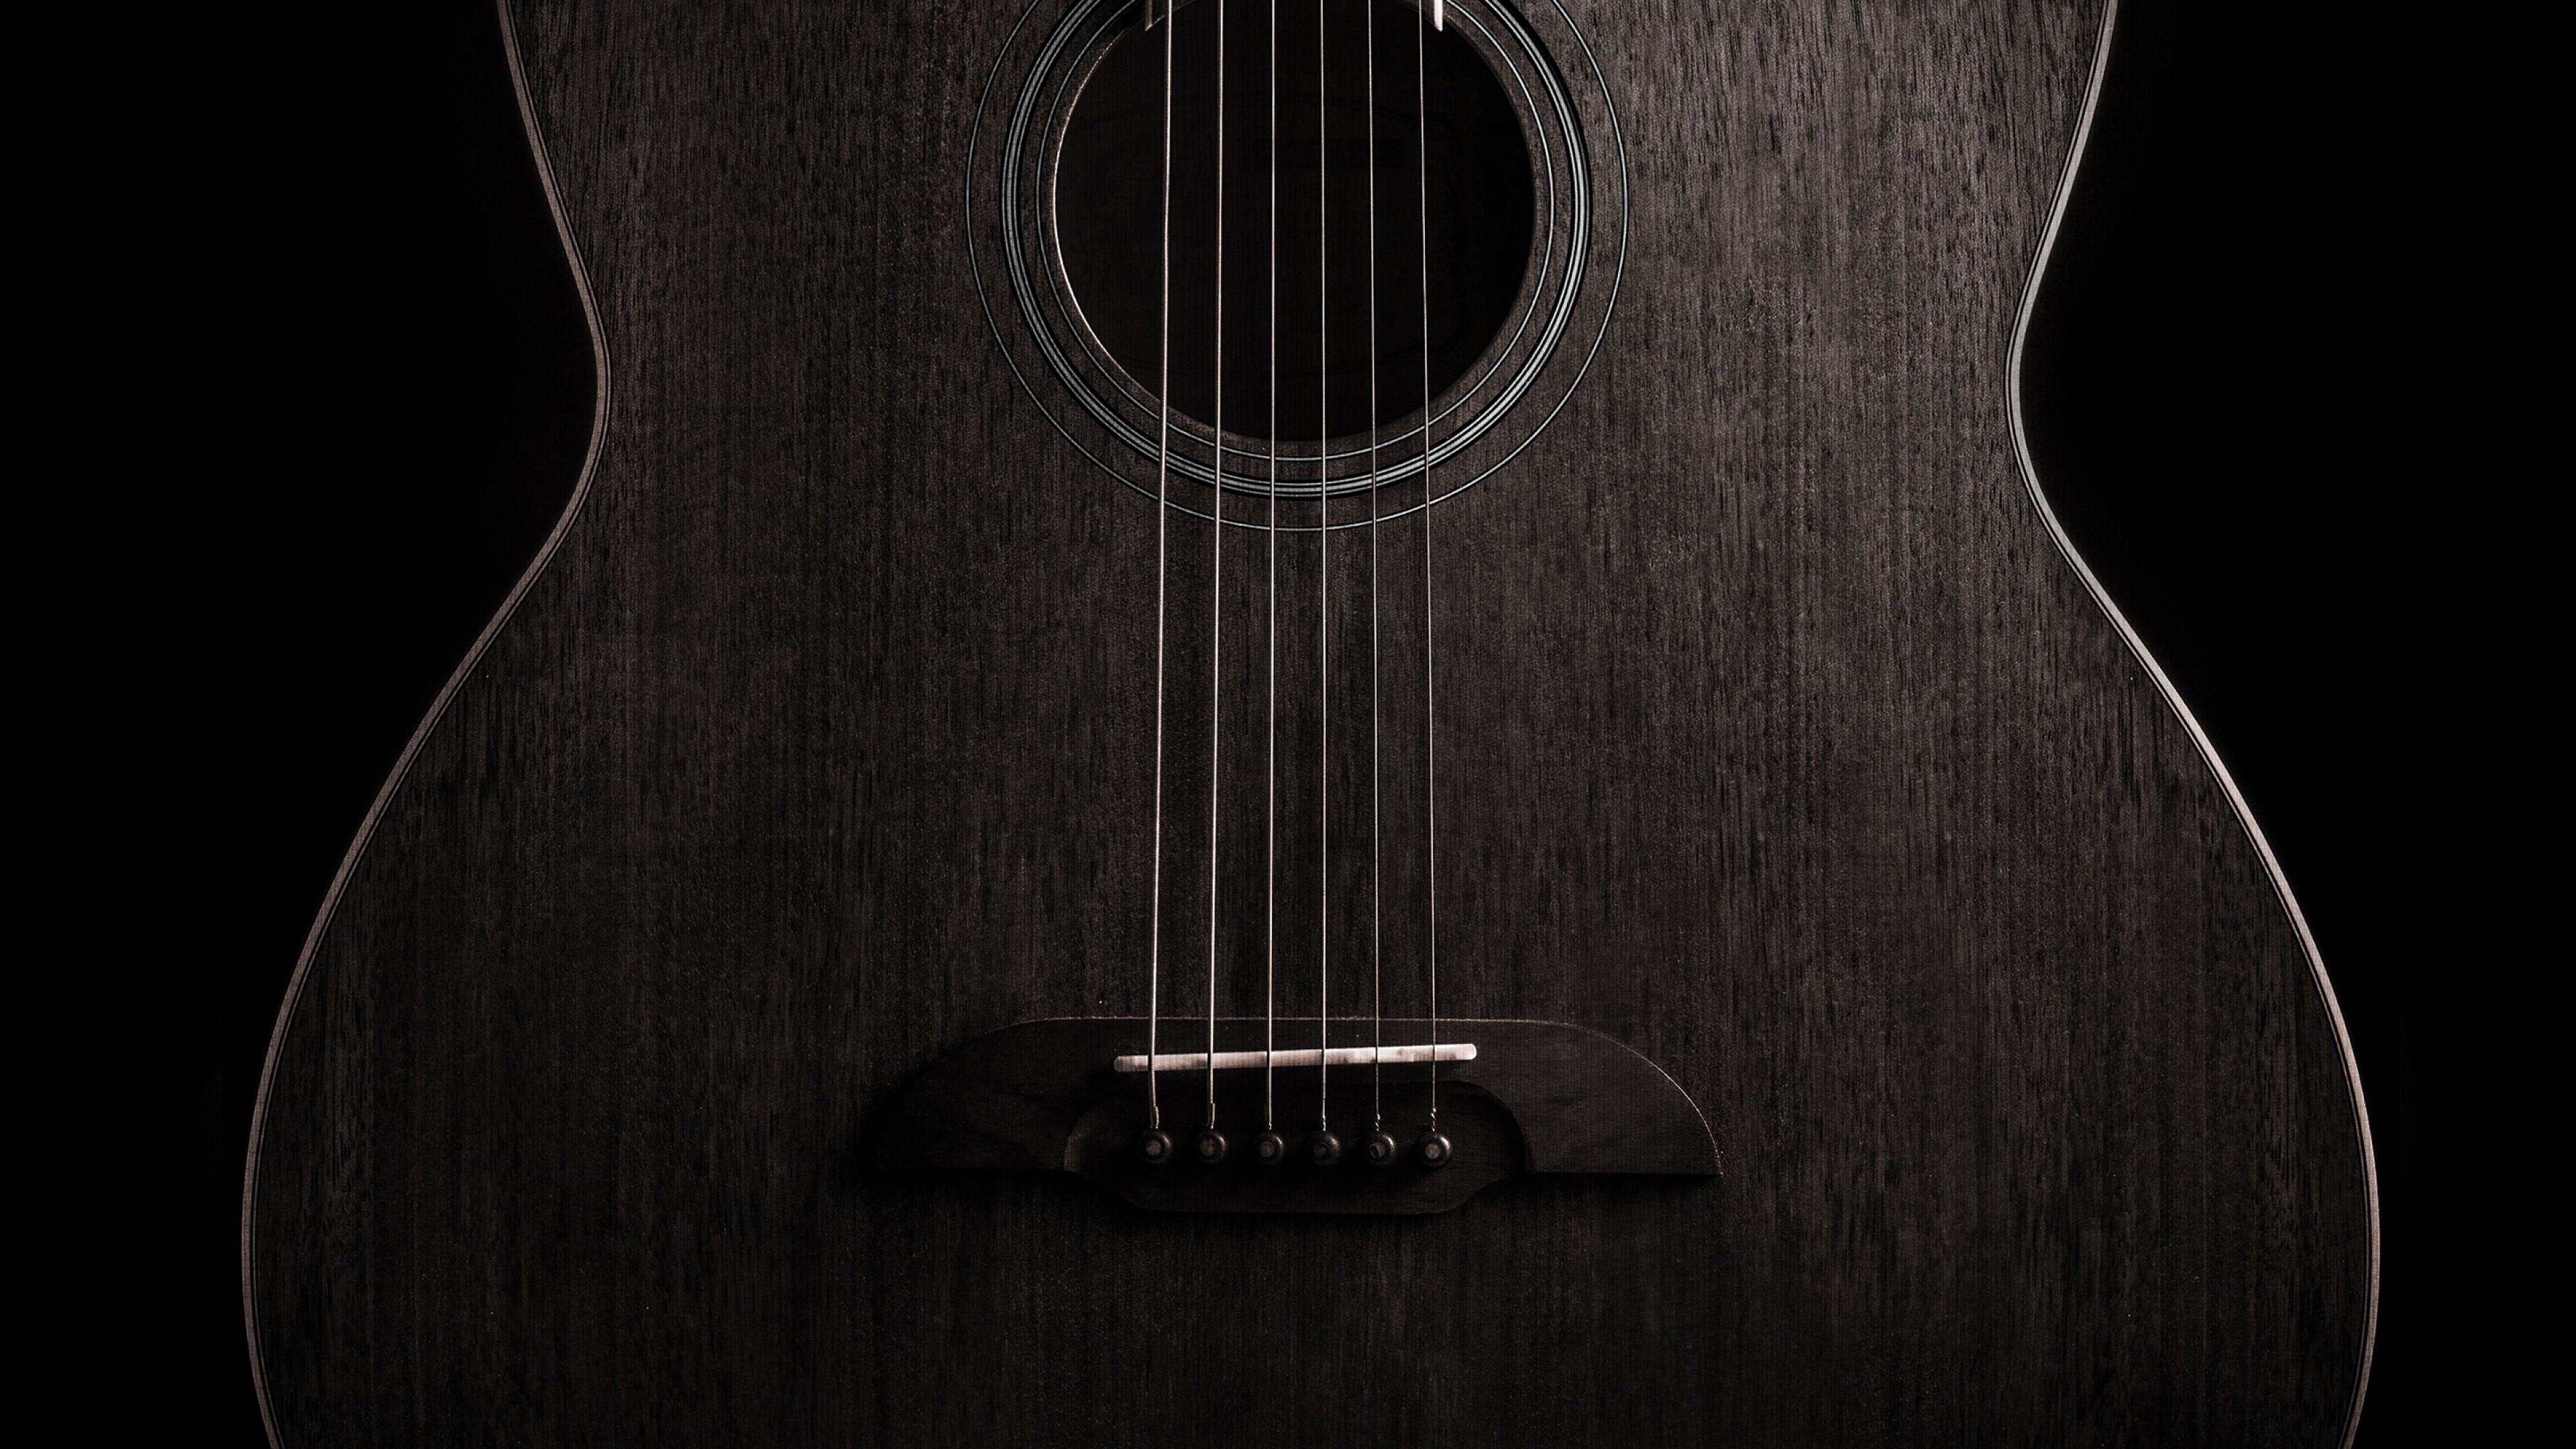 Music Instruments Wallpaper (70+ Images